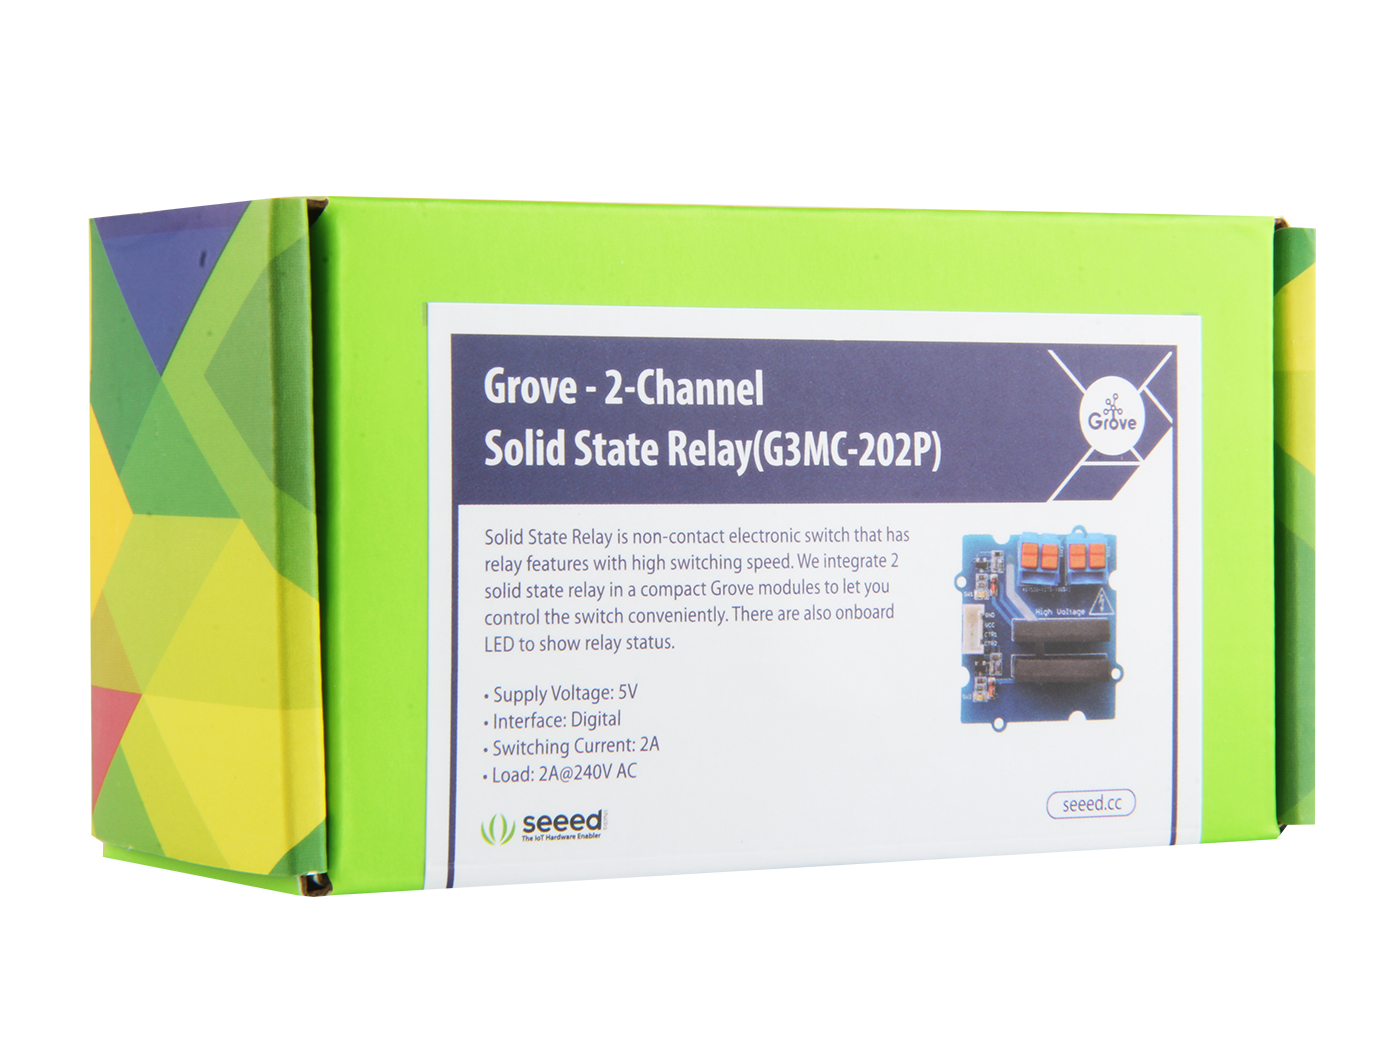 Grove 2 Channel Solid State Relay Leakage